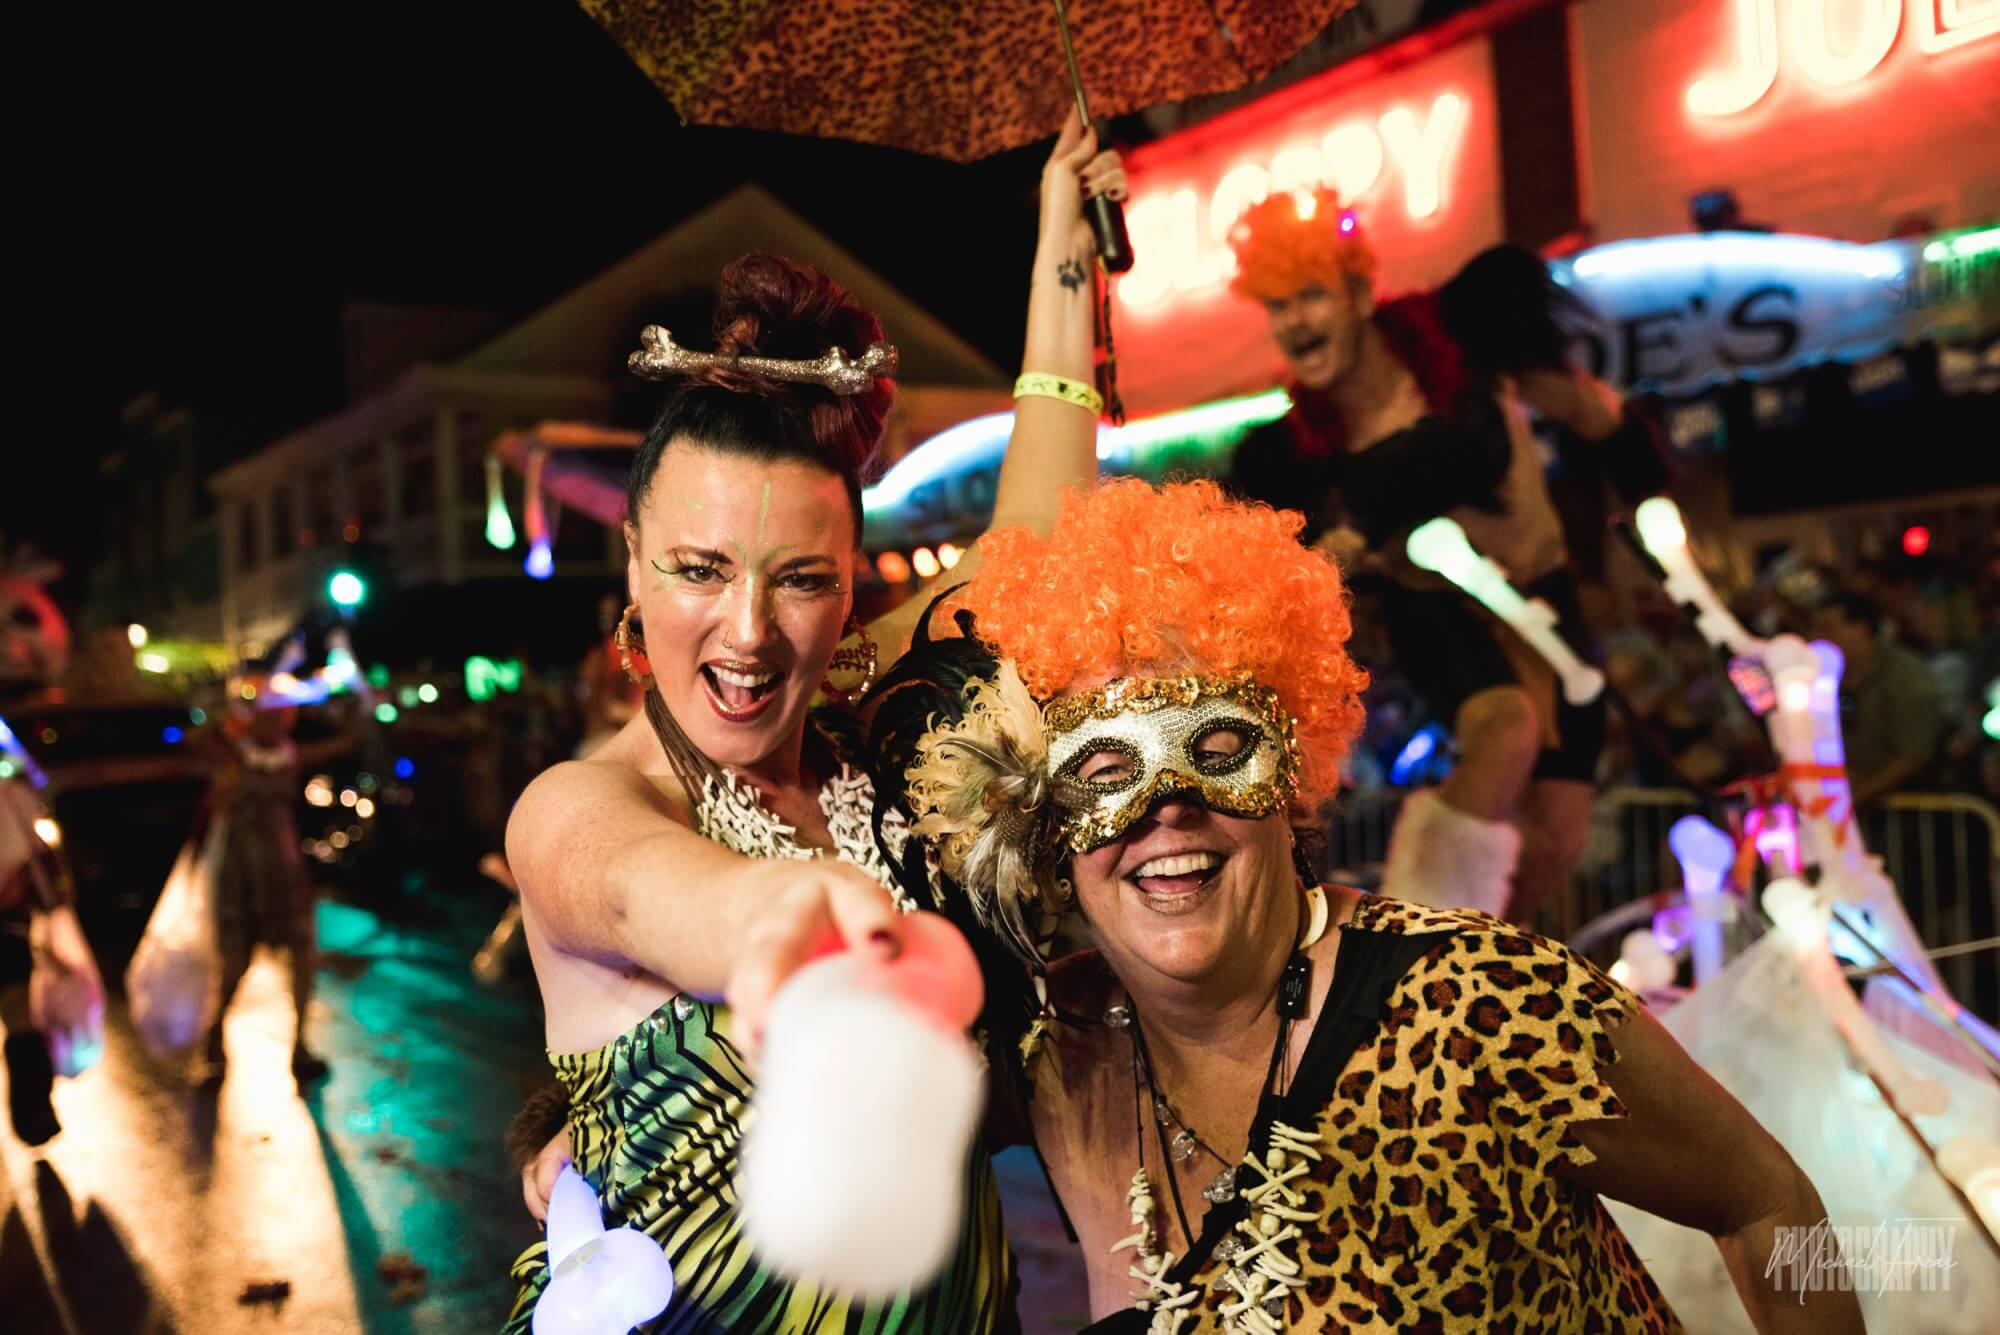 michael freas photography bud light parade 27 - Fantasy Fest 2017 - From the Lens of a Key West Photographer